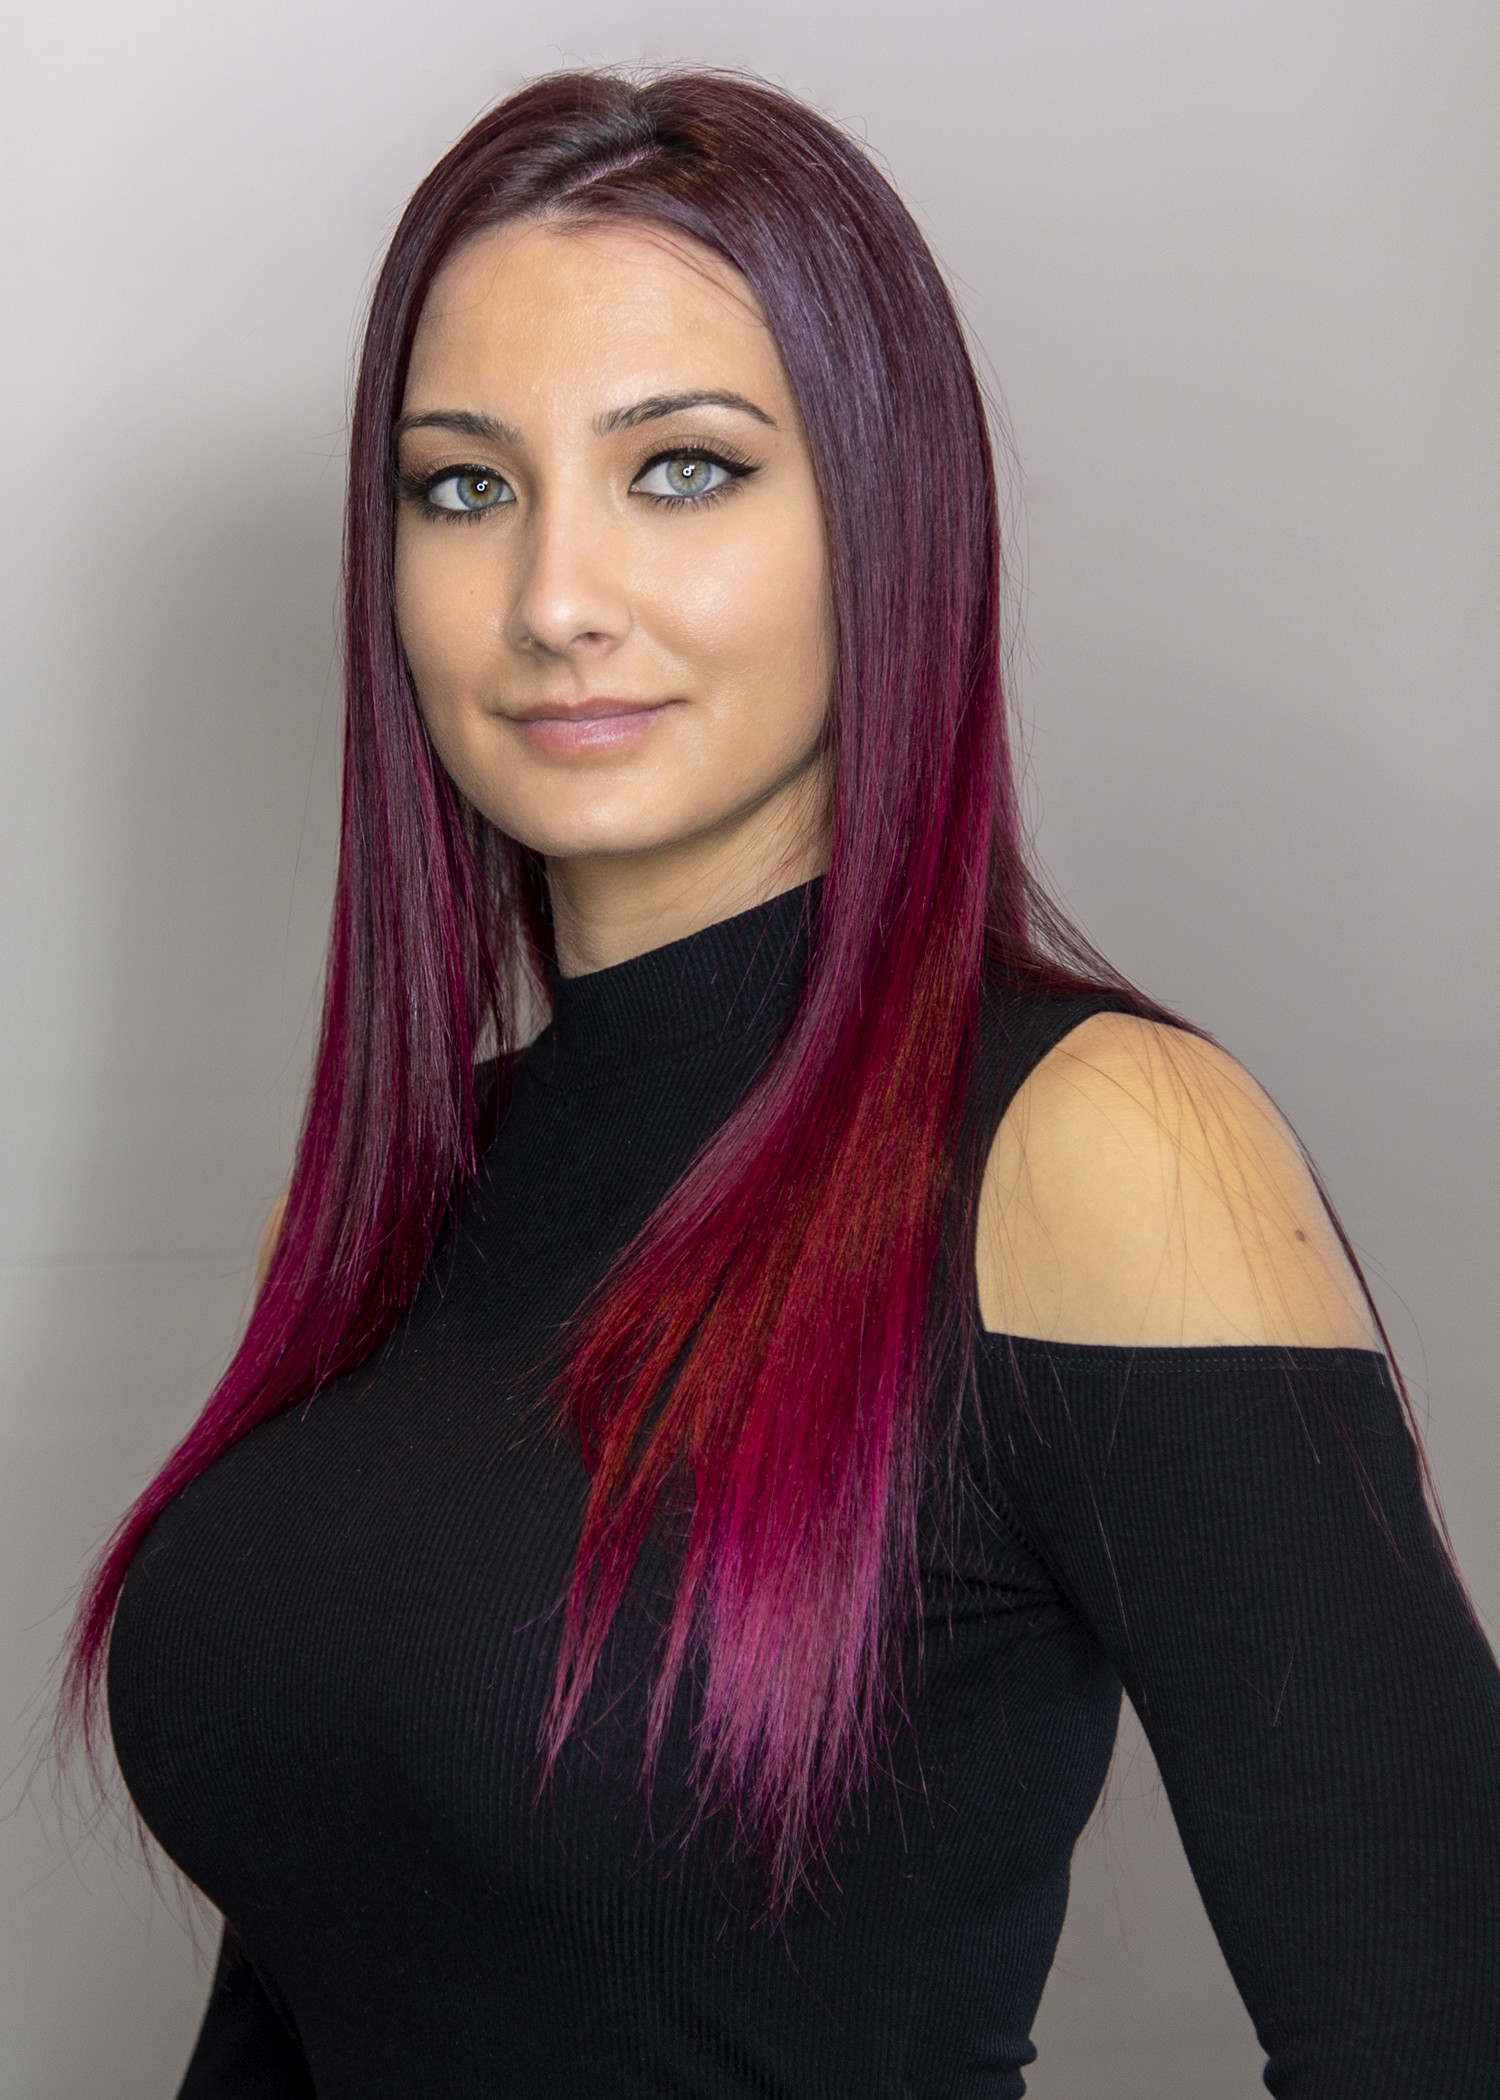 Cristiann - Salon Brielle - Long Island Hair Salon